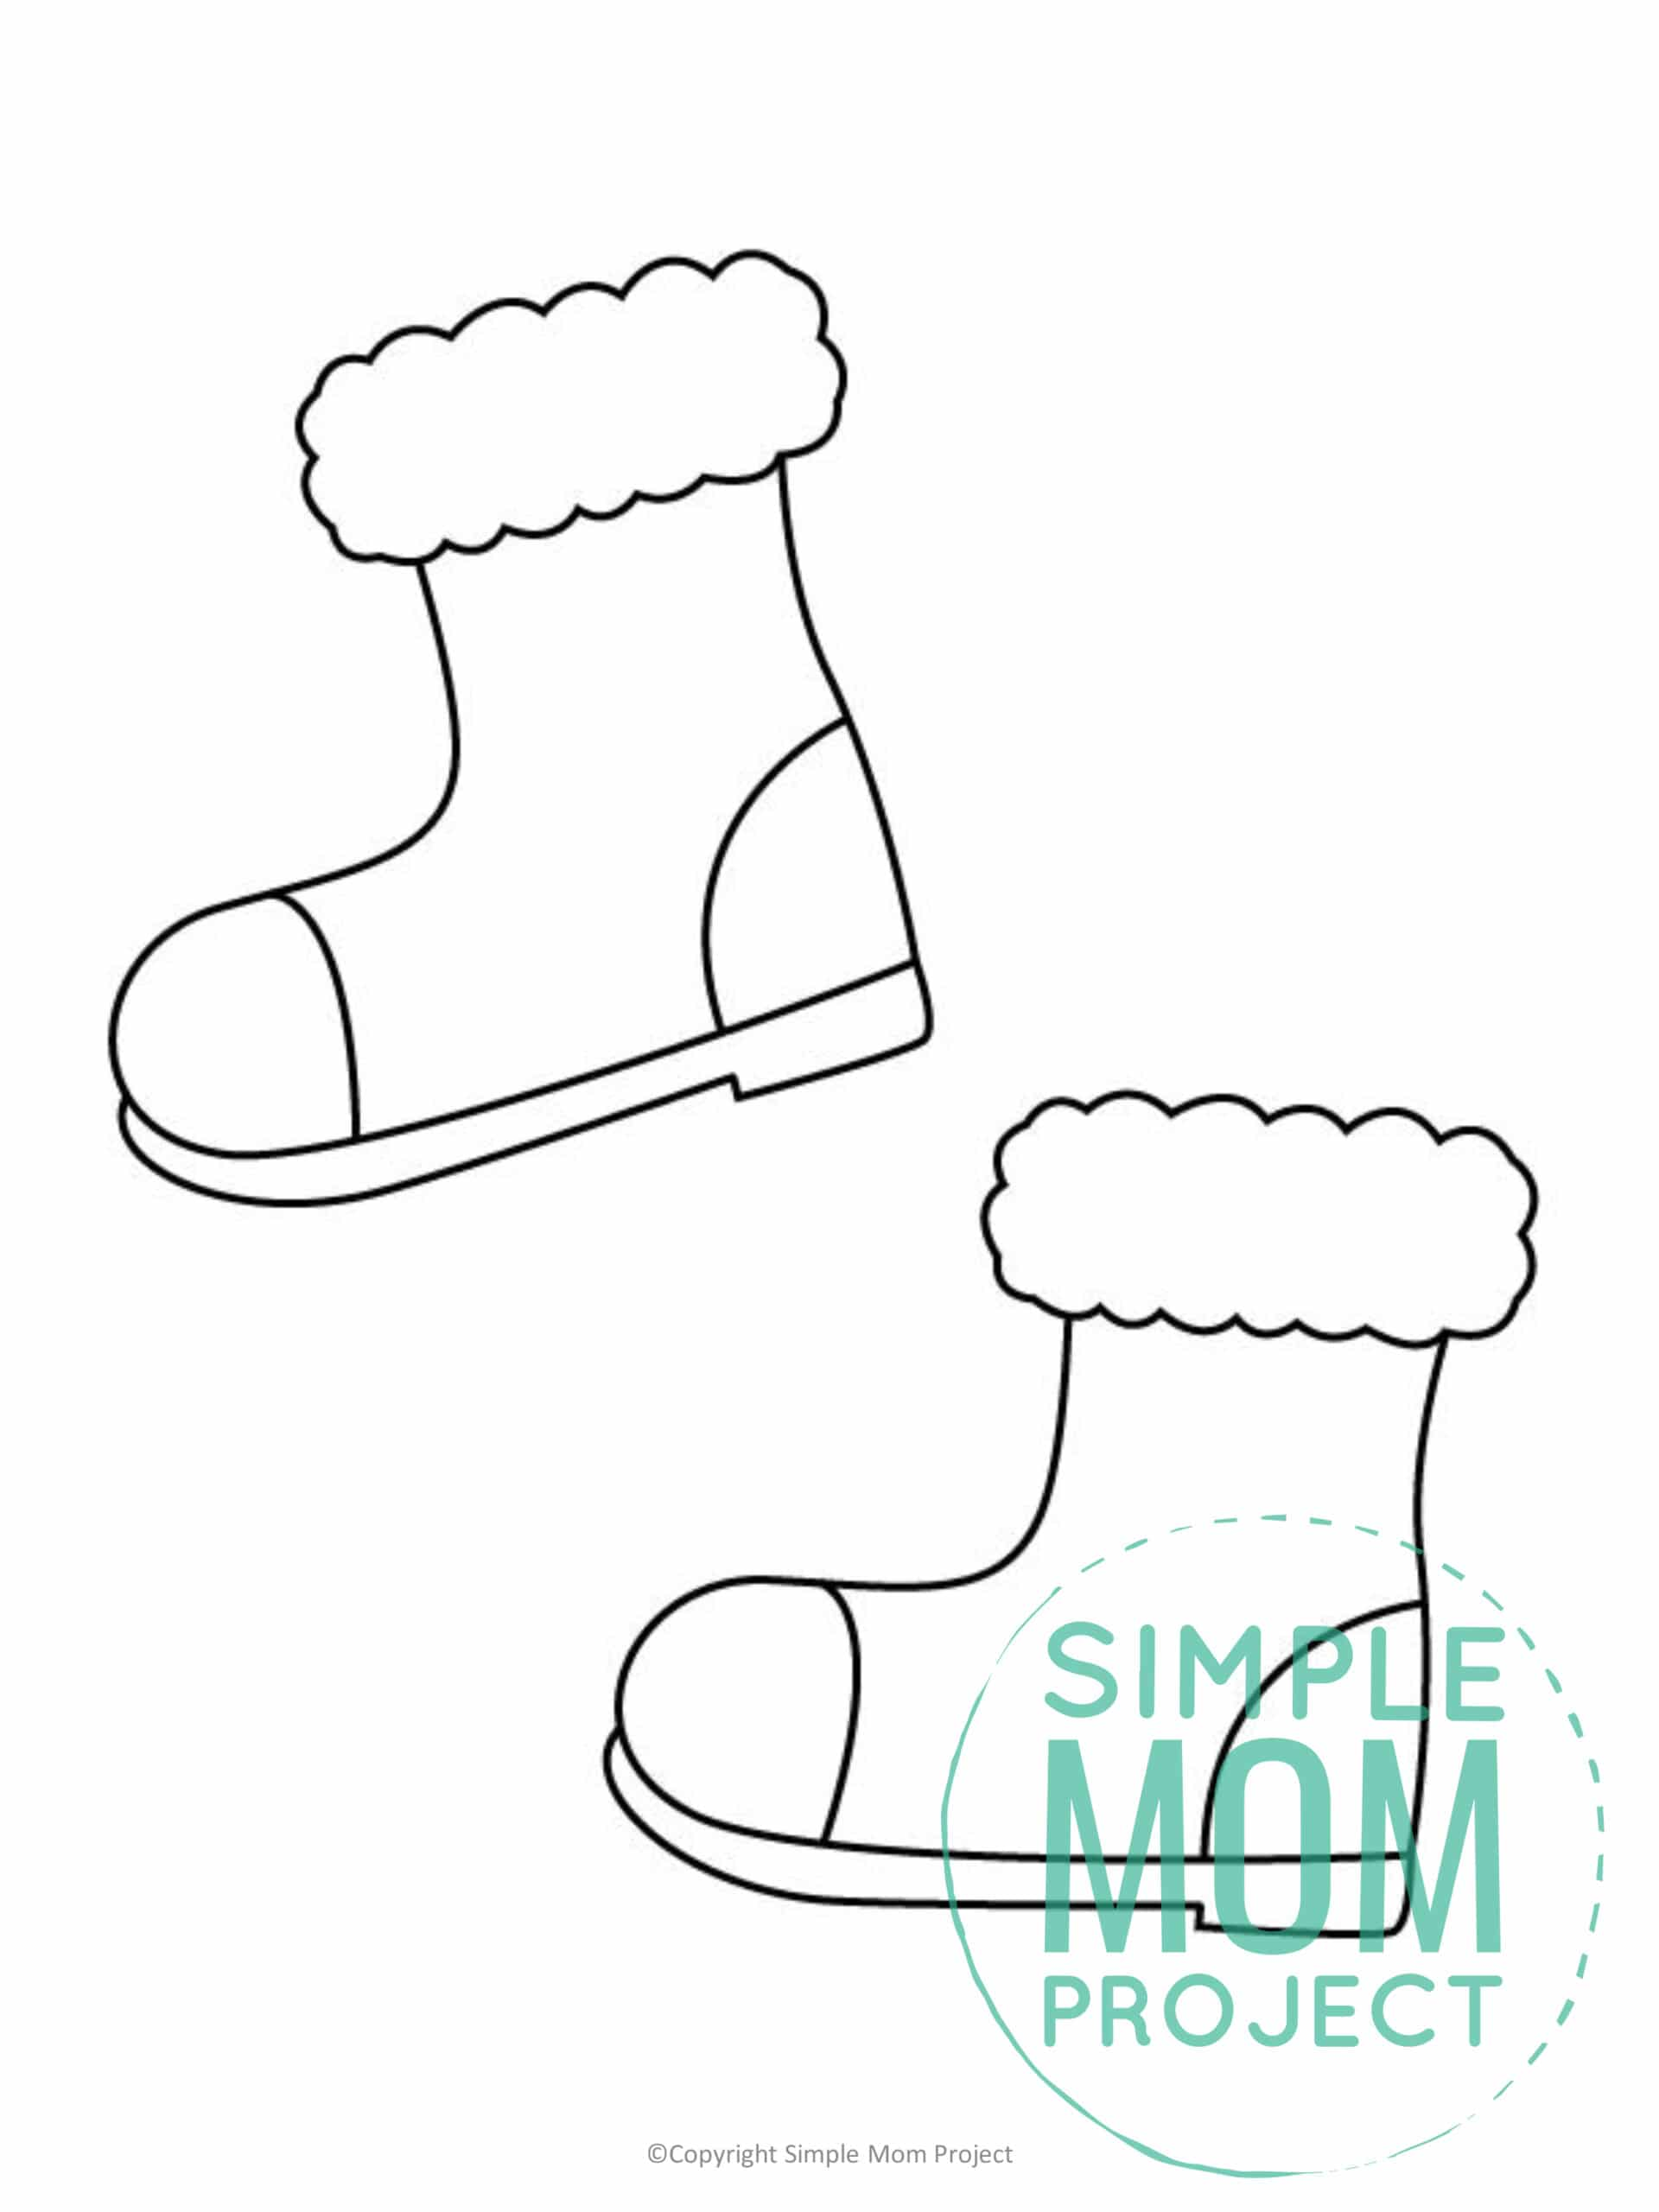 Printable Snow boots Template coloring page for preschoolers, toddlers and kindergartners 1